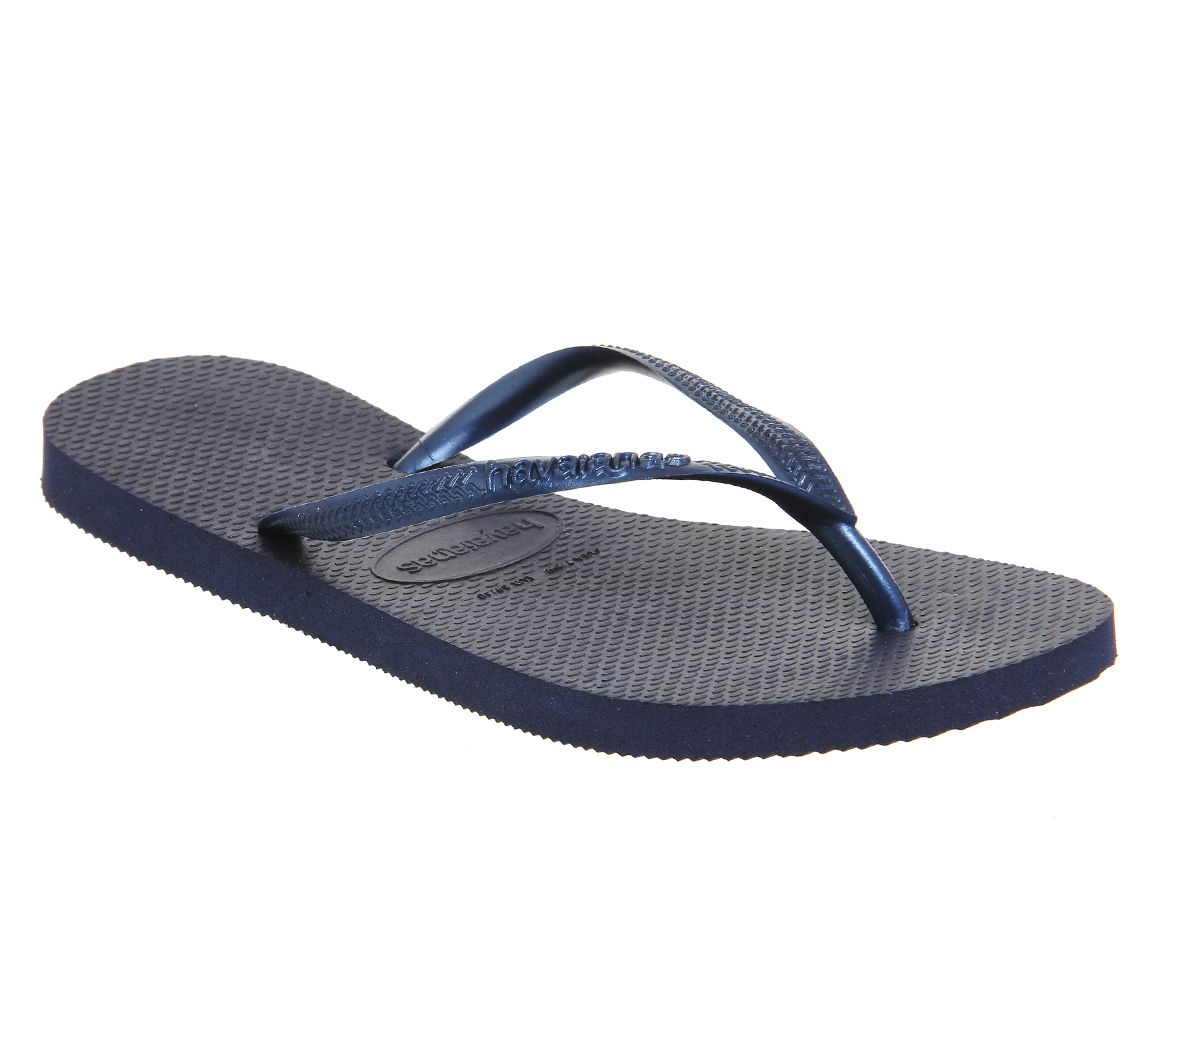 c8bb2231ba05 Havaianas Slim Flip Flop Navy Rubber - Sandals